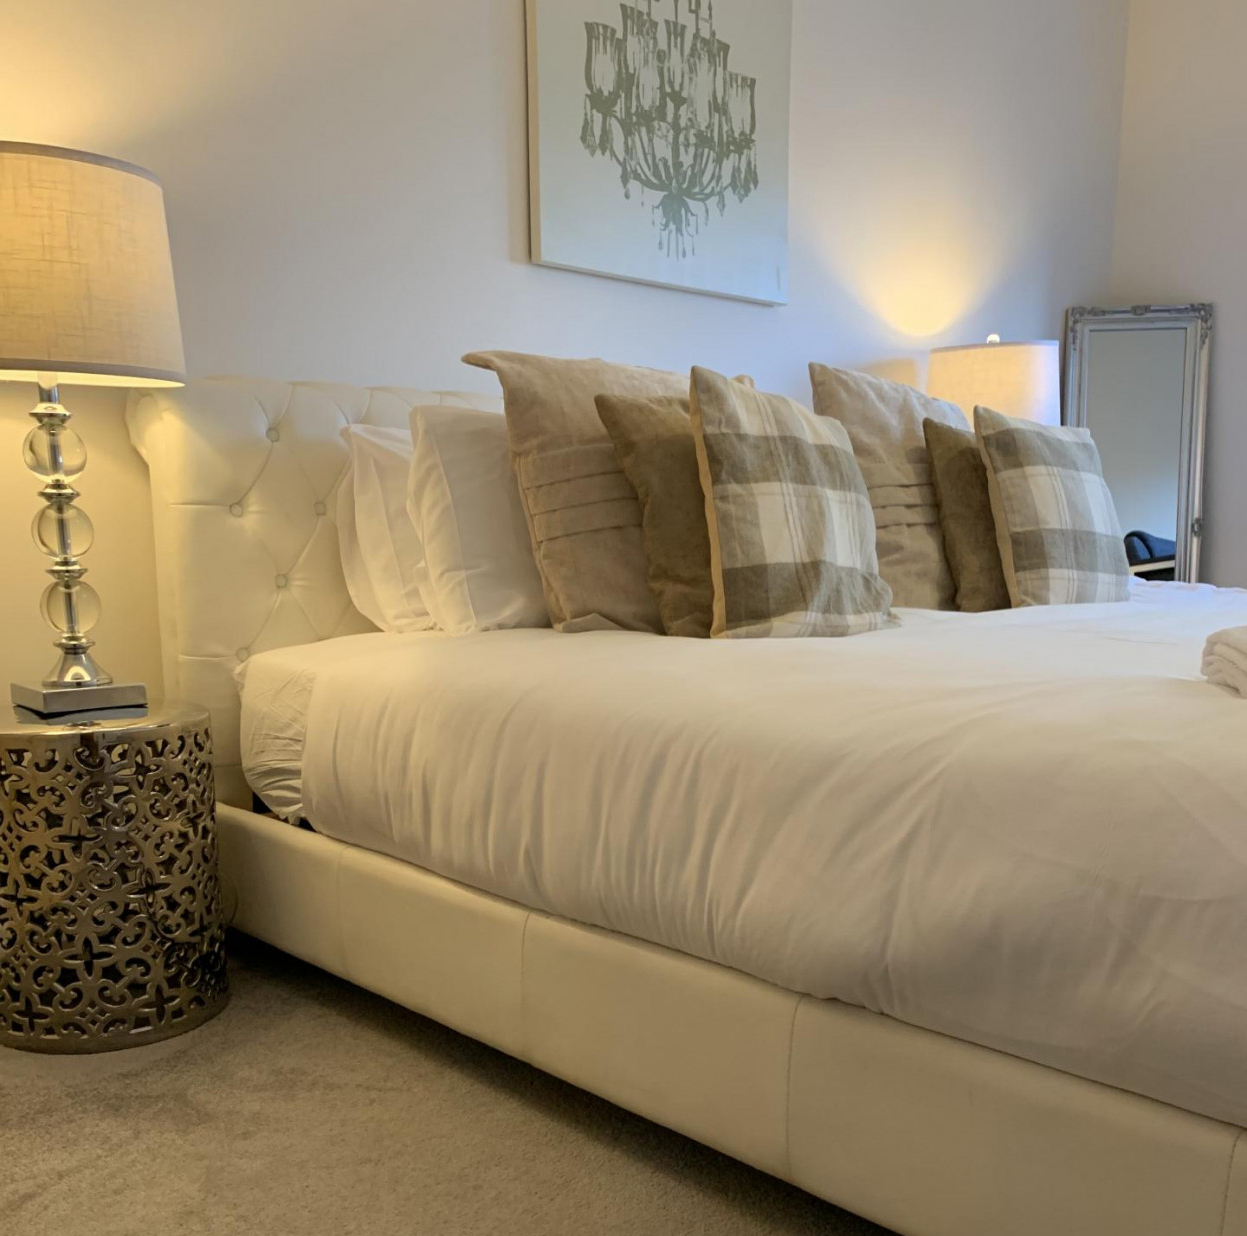 Bedroom at Queens Highlands Apartments, Rubislaw, Aberdeen